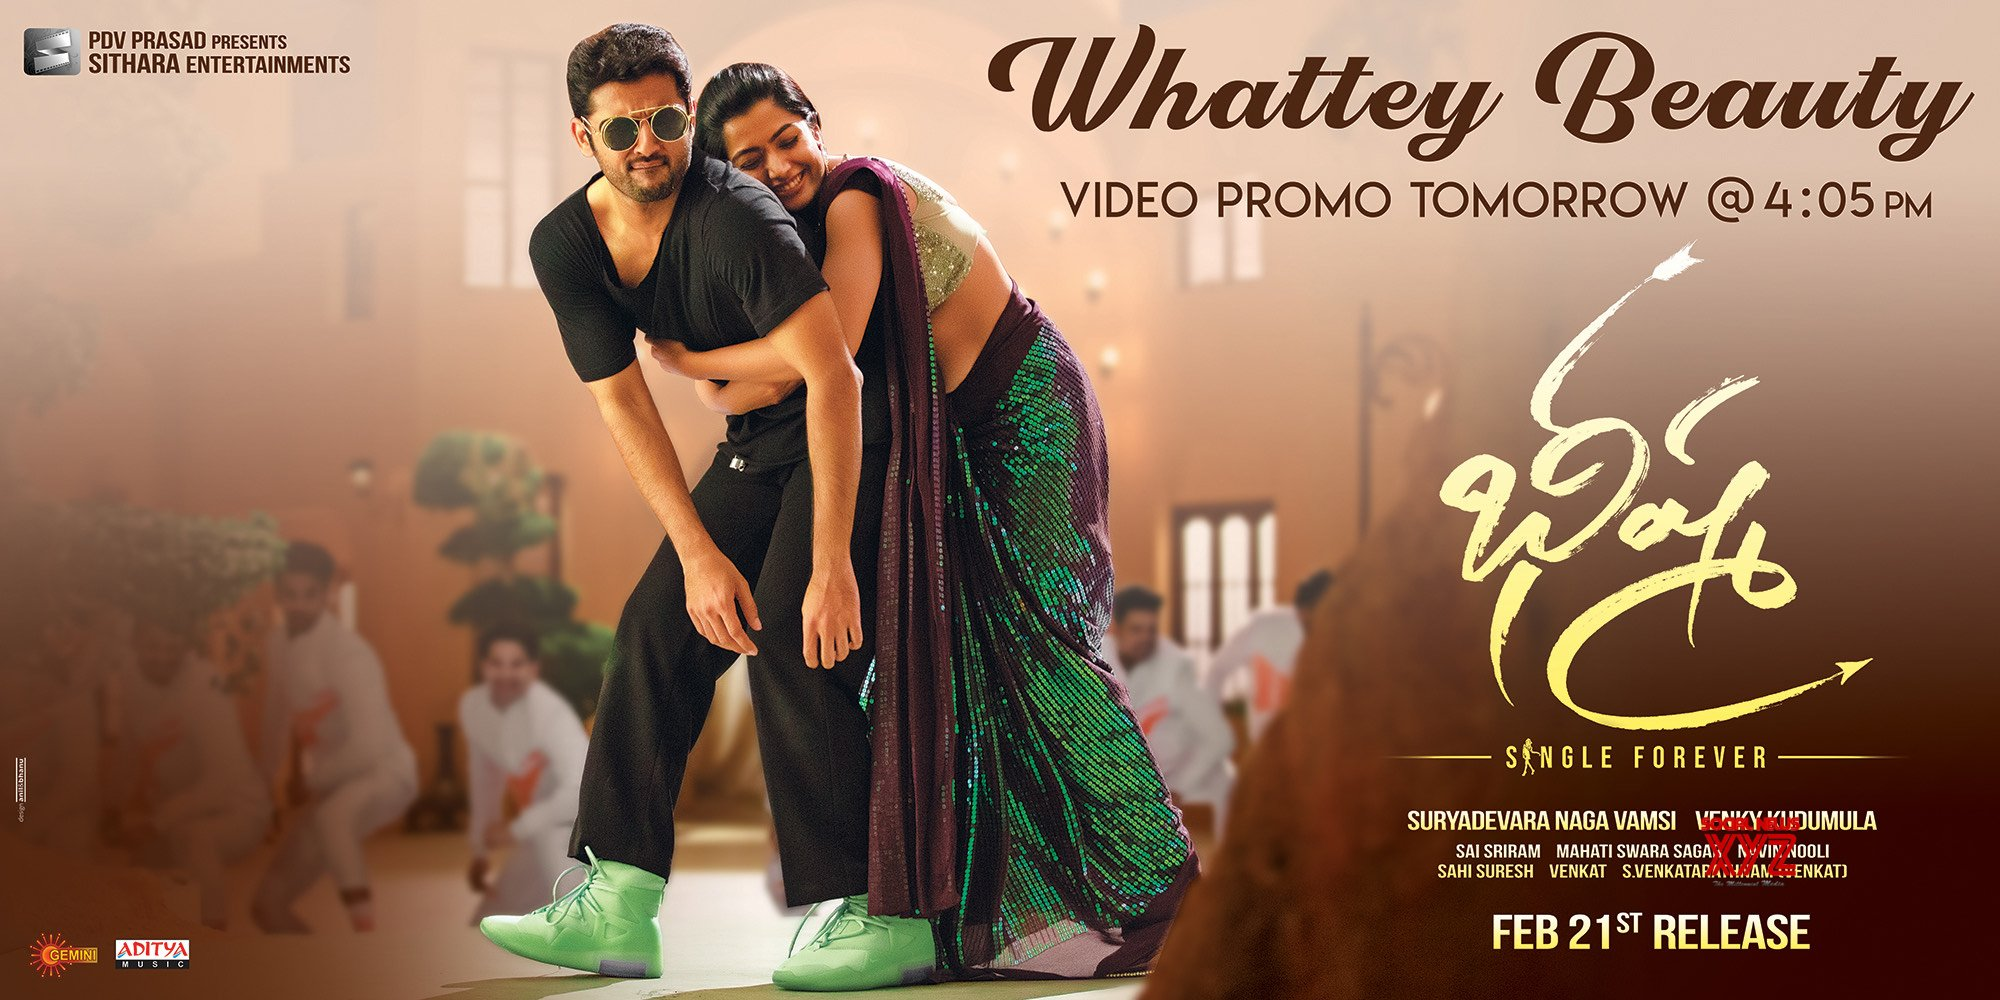 Bheeshma Movie Whattey Beauty Song Promo New Hd Poster And Still Social News Xyz